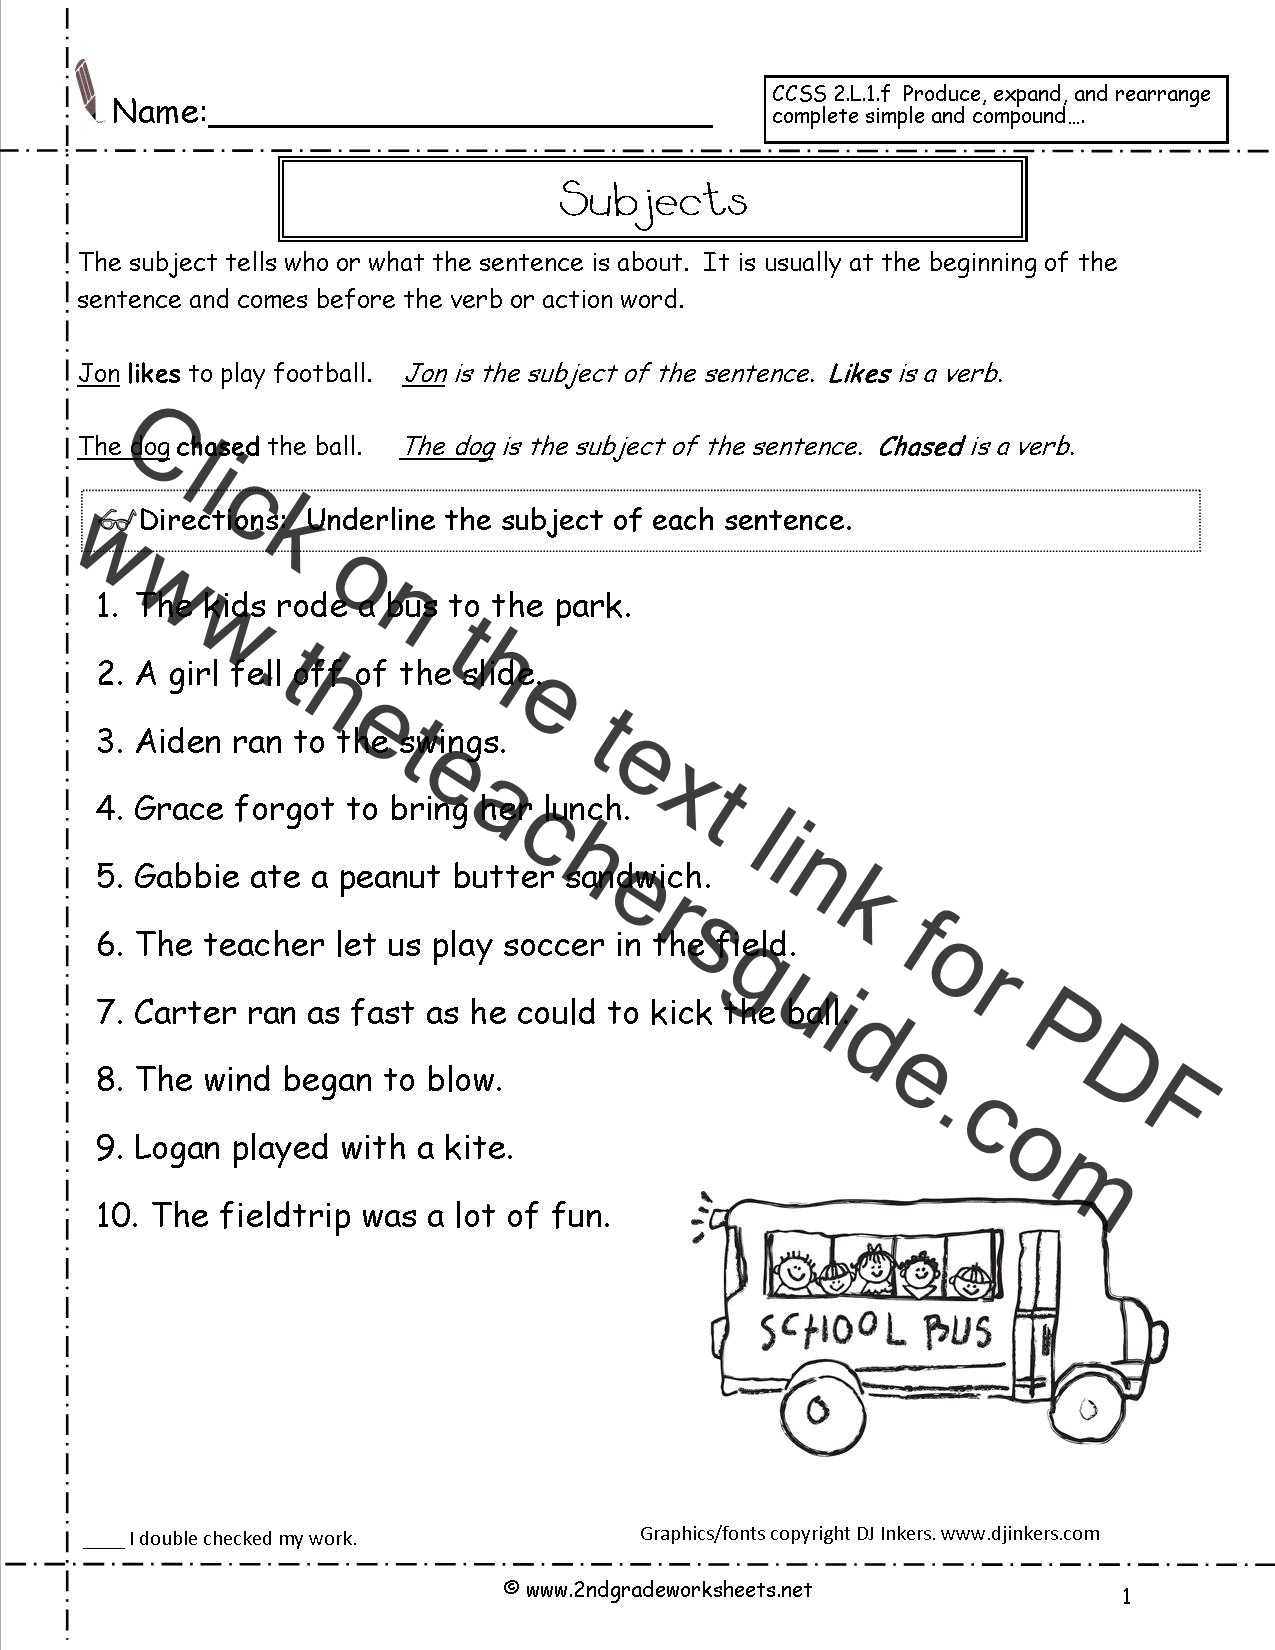 Worksheets Editing Worksheets editing sentences worksheets free library download spooky worksheet 1st2nd grade